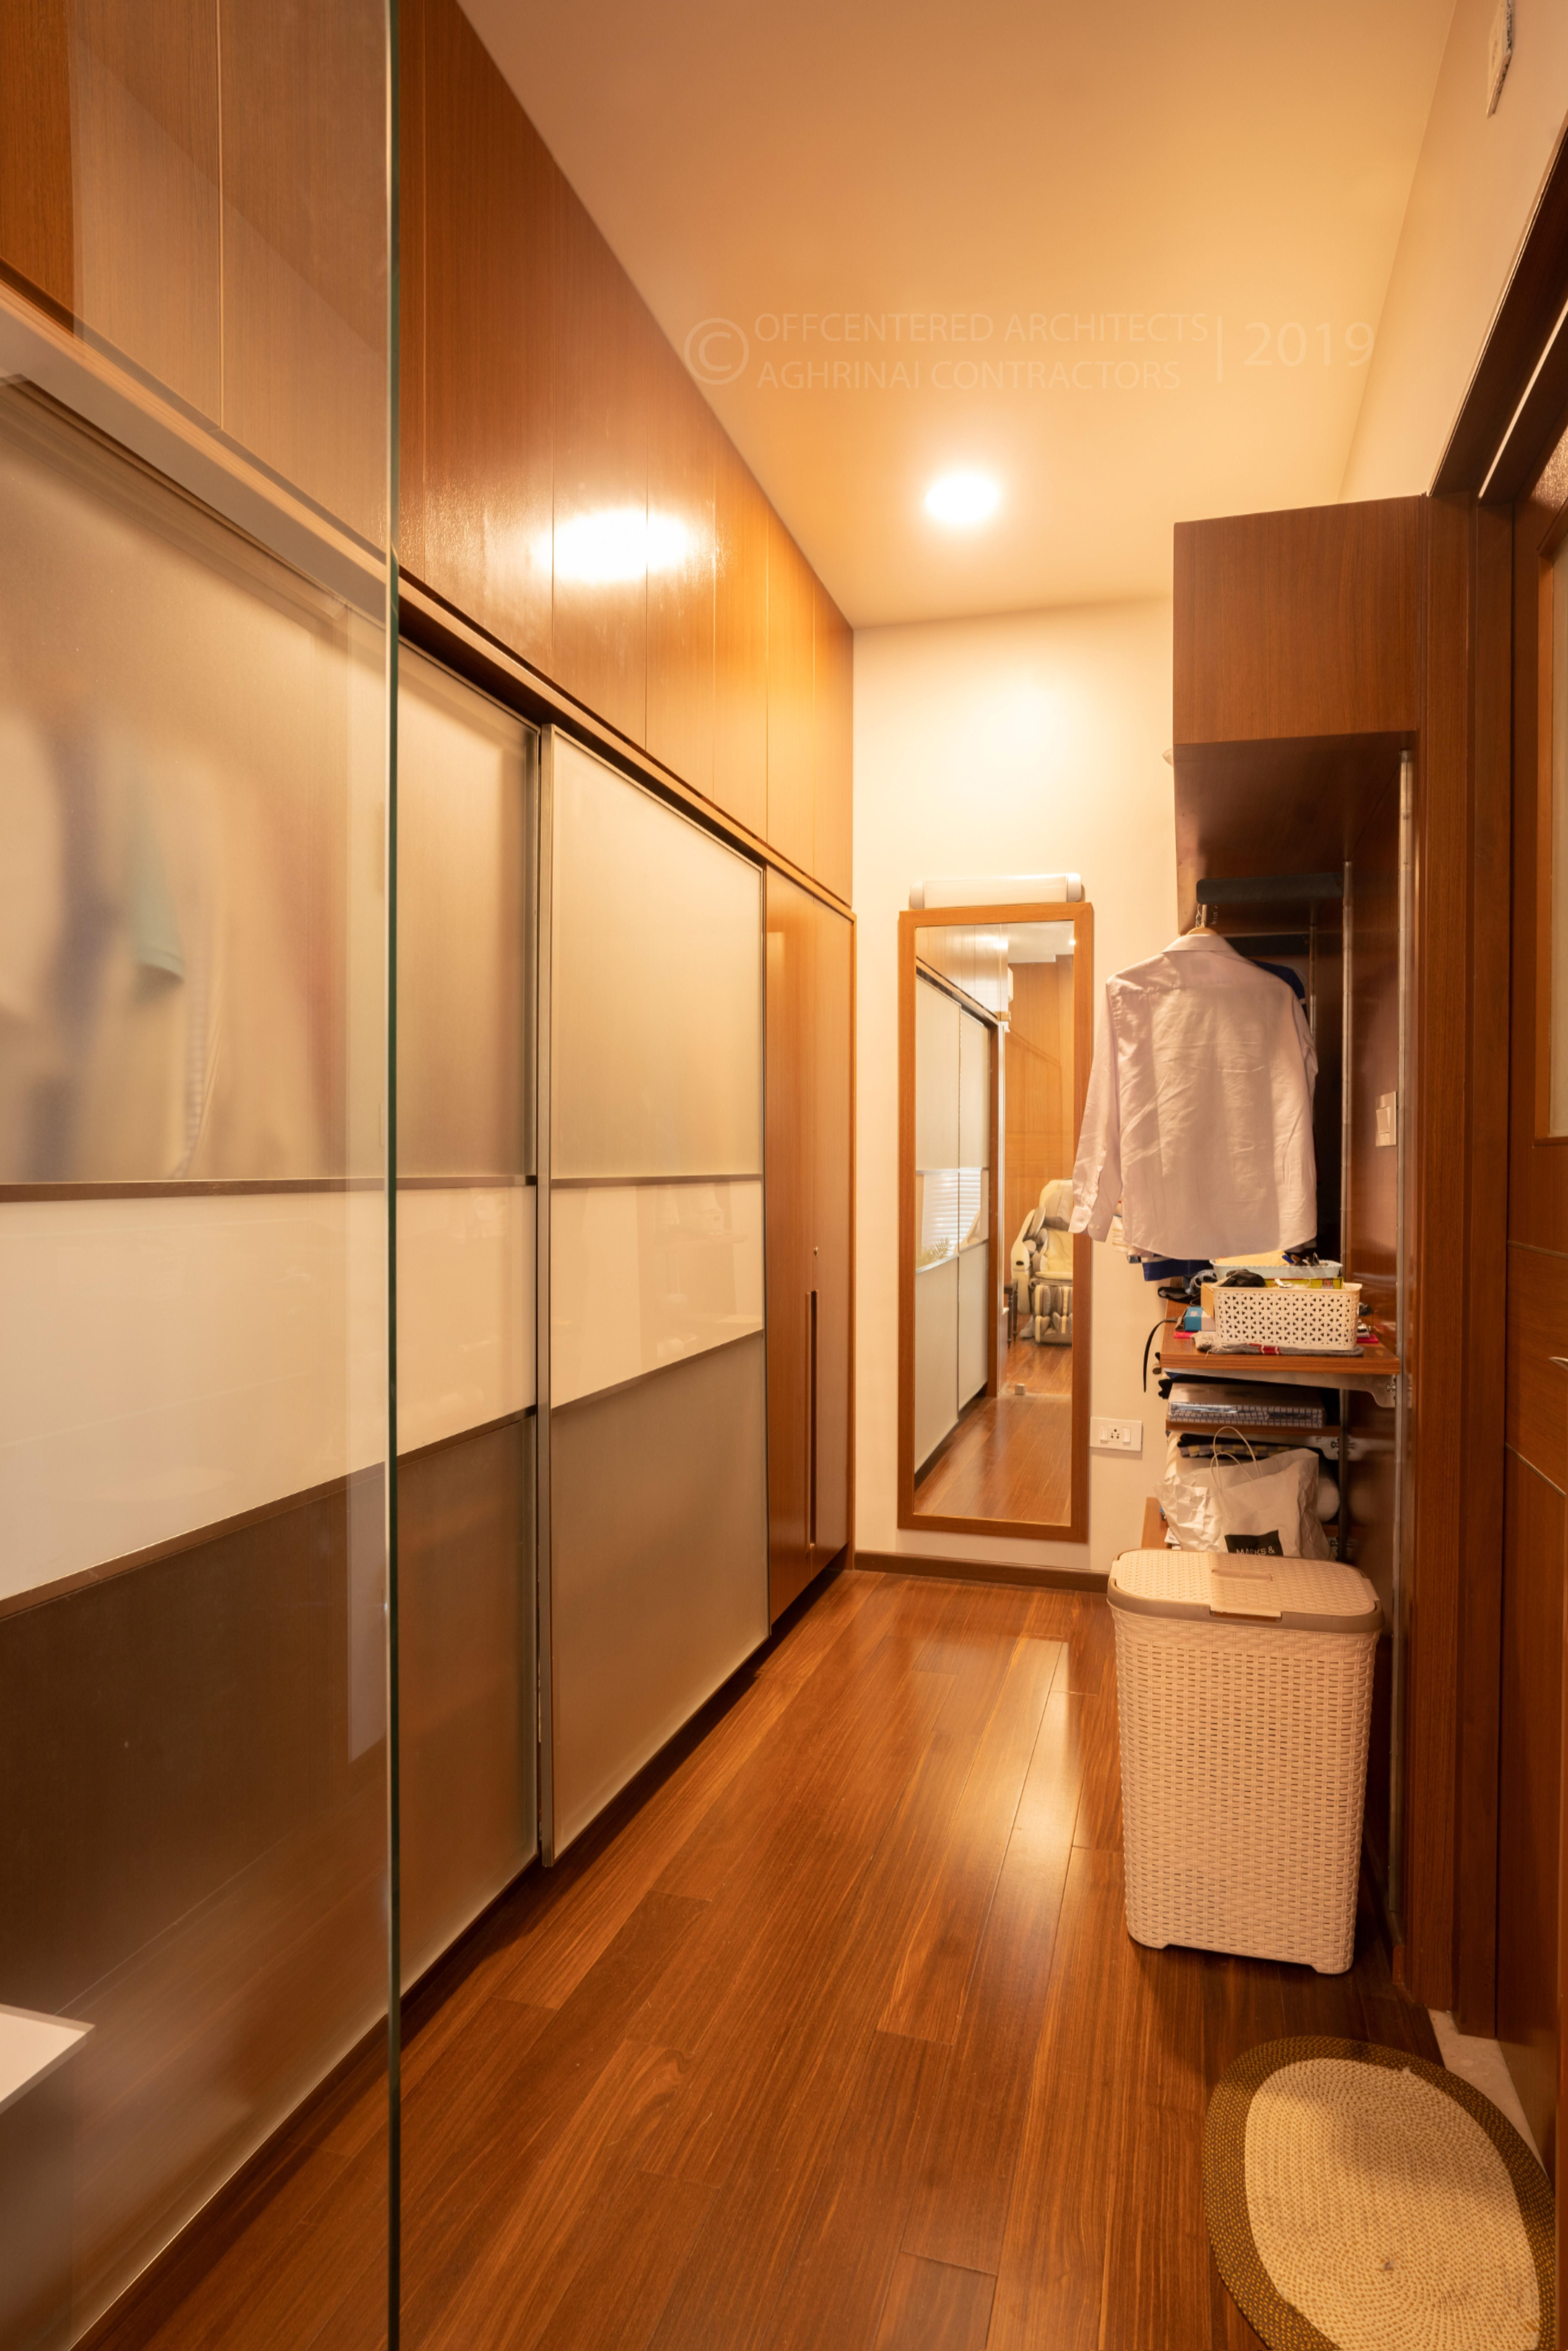 Walk In Wardrobe Ample Storage Planning And Design Is Required In Case Of A Walk In Wardrobe Customization Was Ma In 2020 Best Architects Architecture Firm Architect